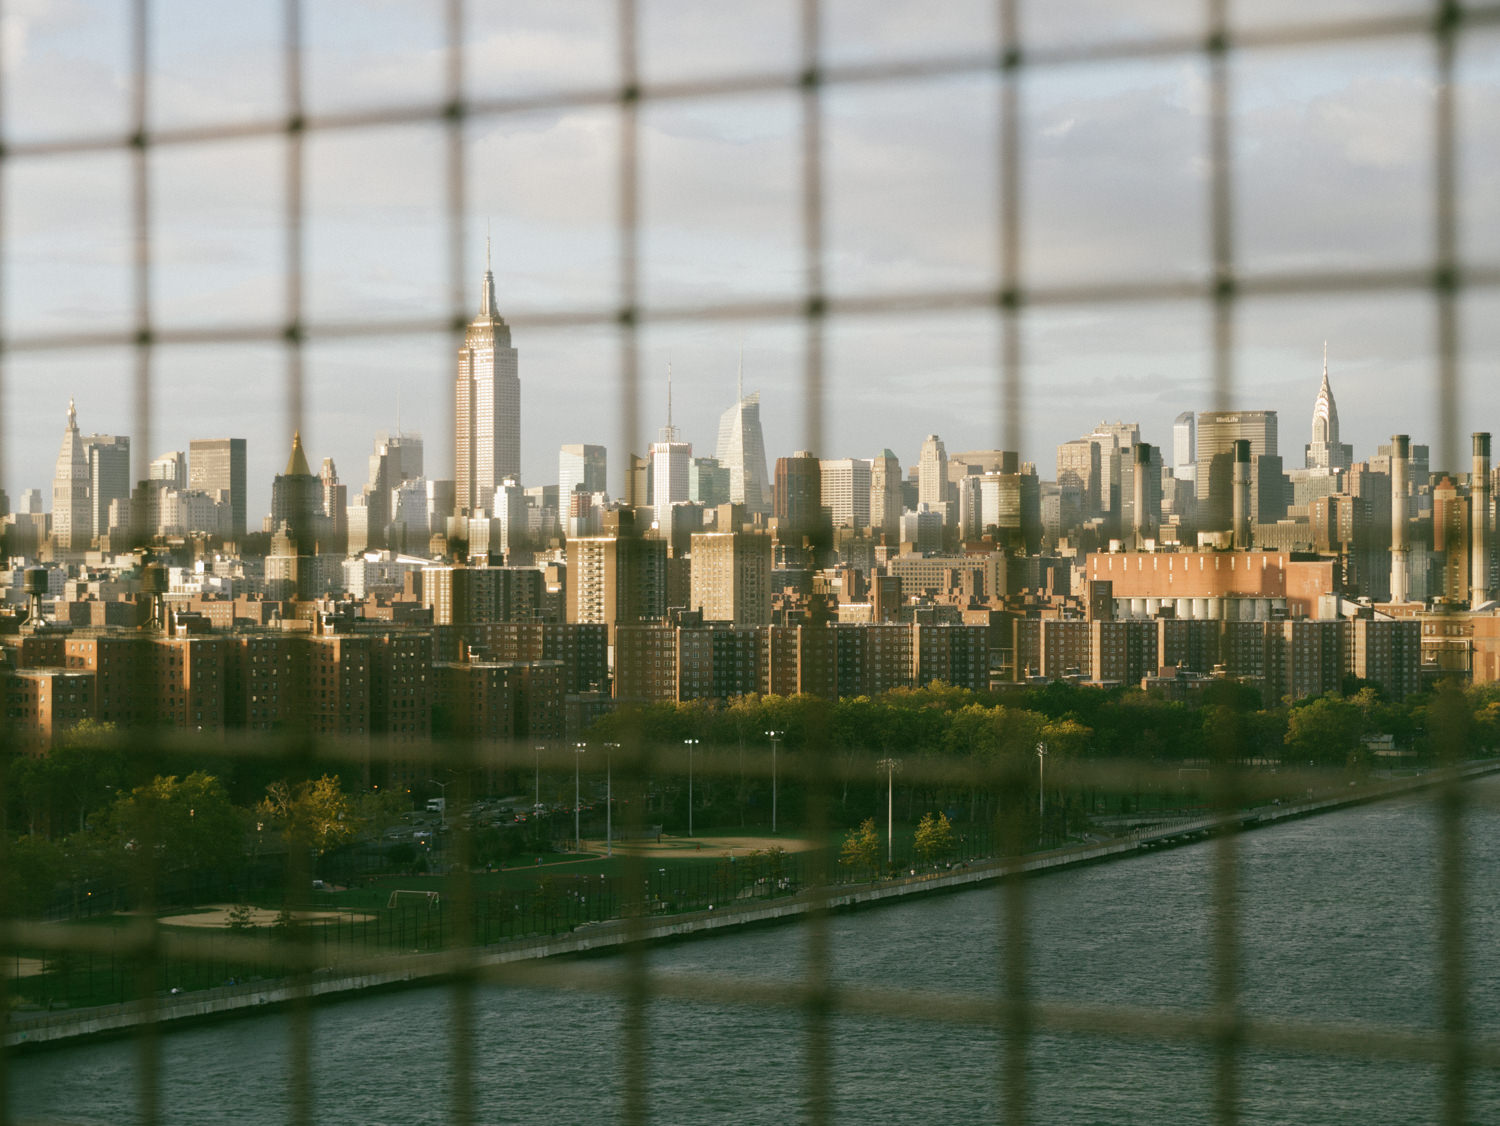 View of the East River Park and Alphabet City in the foreground. Empire State in the background